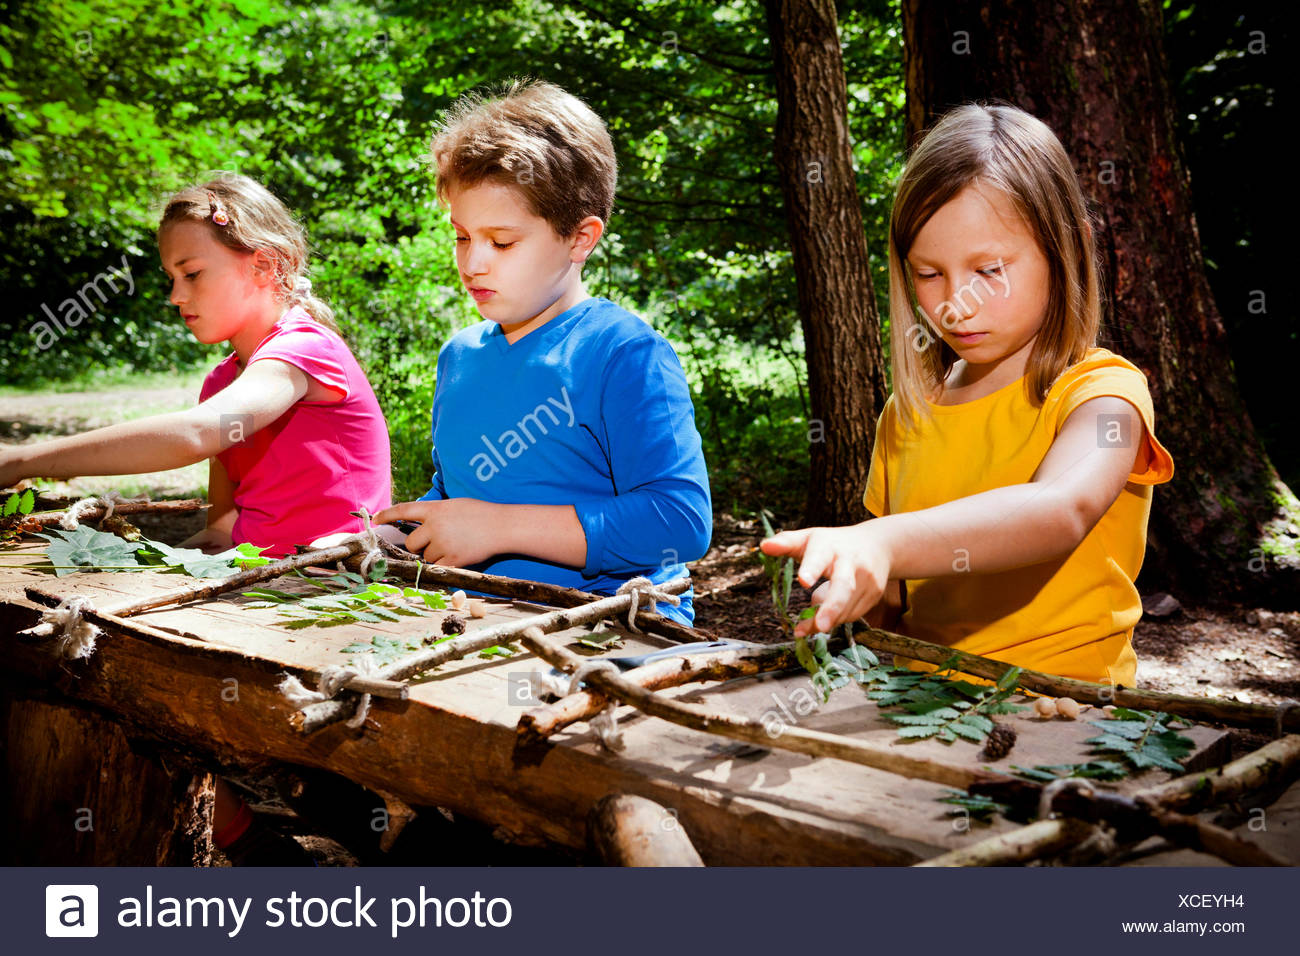 Children crafting in a forest camp, Munich, Bavaria, Germany - Stock Image